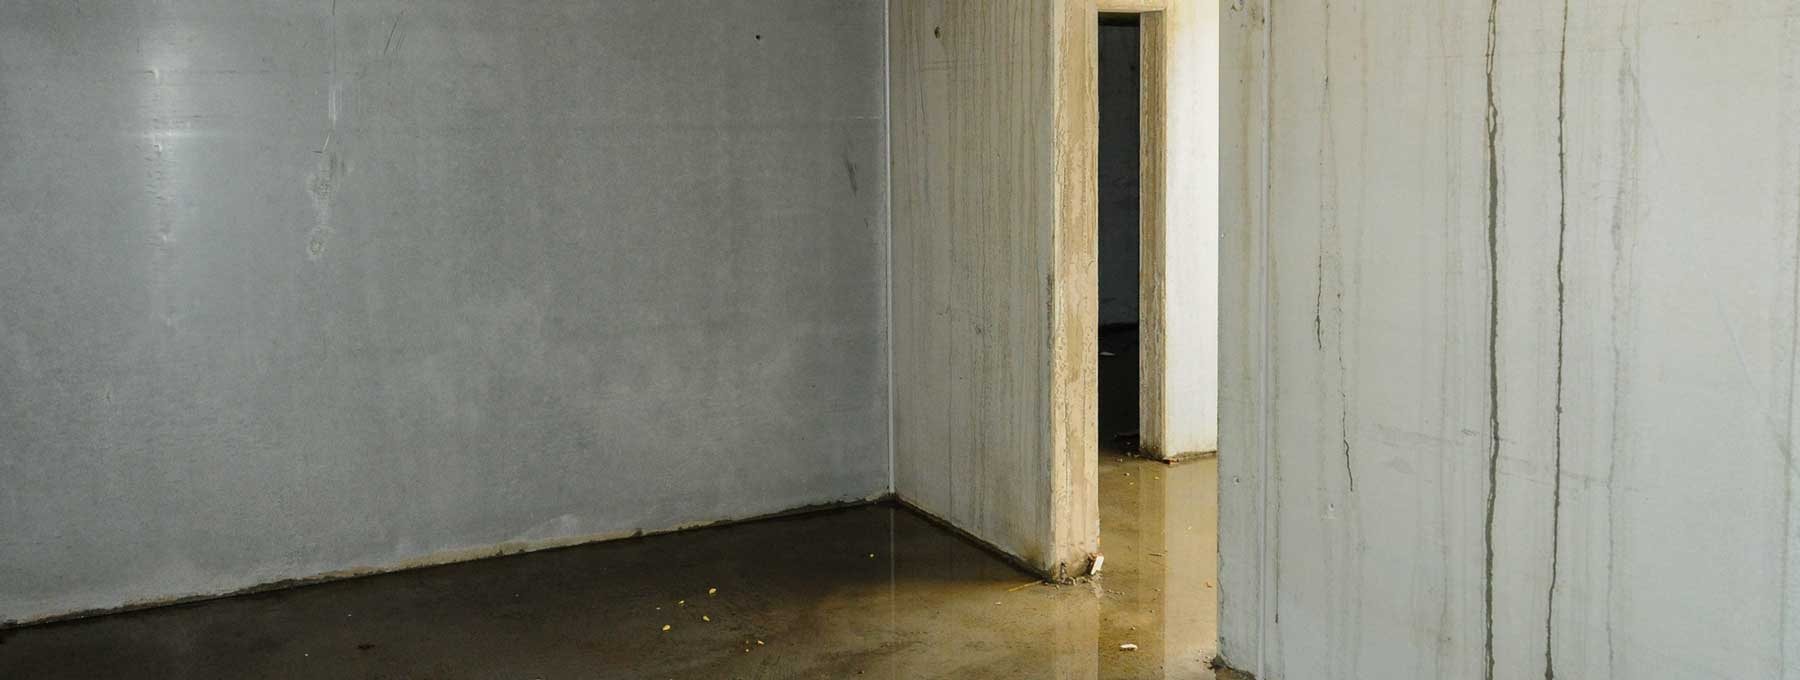 water damage orangeburg sc